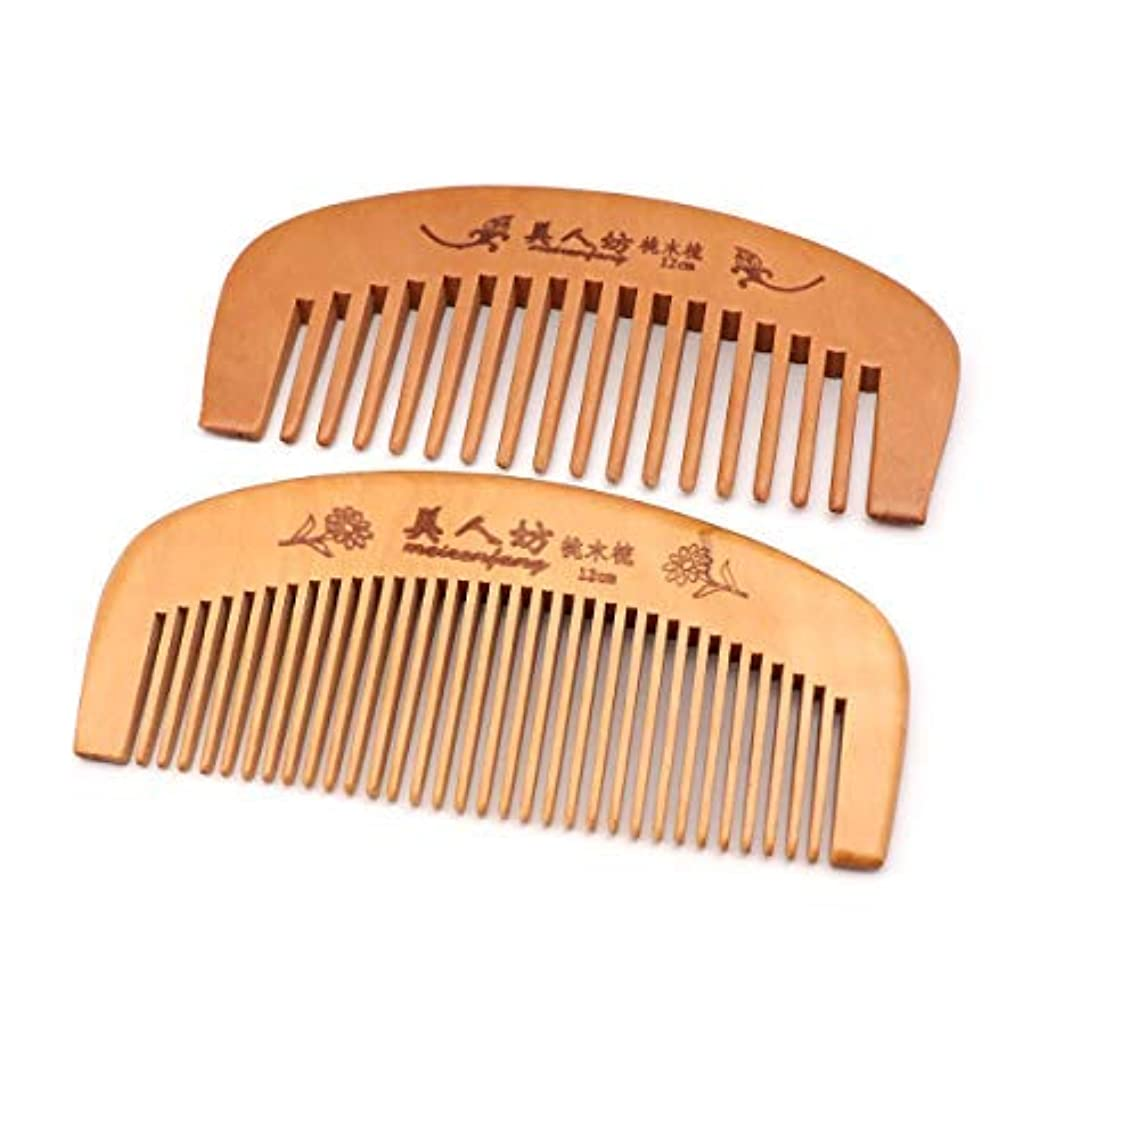 何かカレンダーブレークHandmade Wooden Hair Comb for Curly Wide Toothed Wooden Comb, anti-Static and Barrier-free Hand Brushing Beard, hair, Suitable for Women, Male Static Natural Wood Sandalwood Comb (Short comb) [並行輸入品]